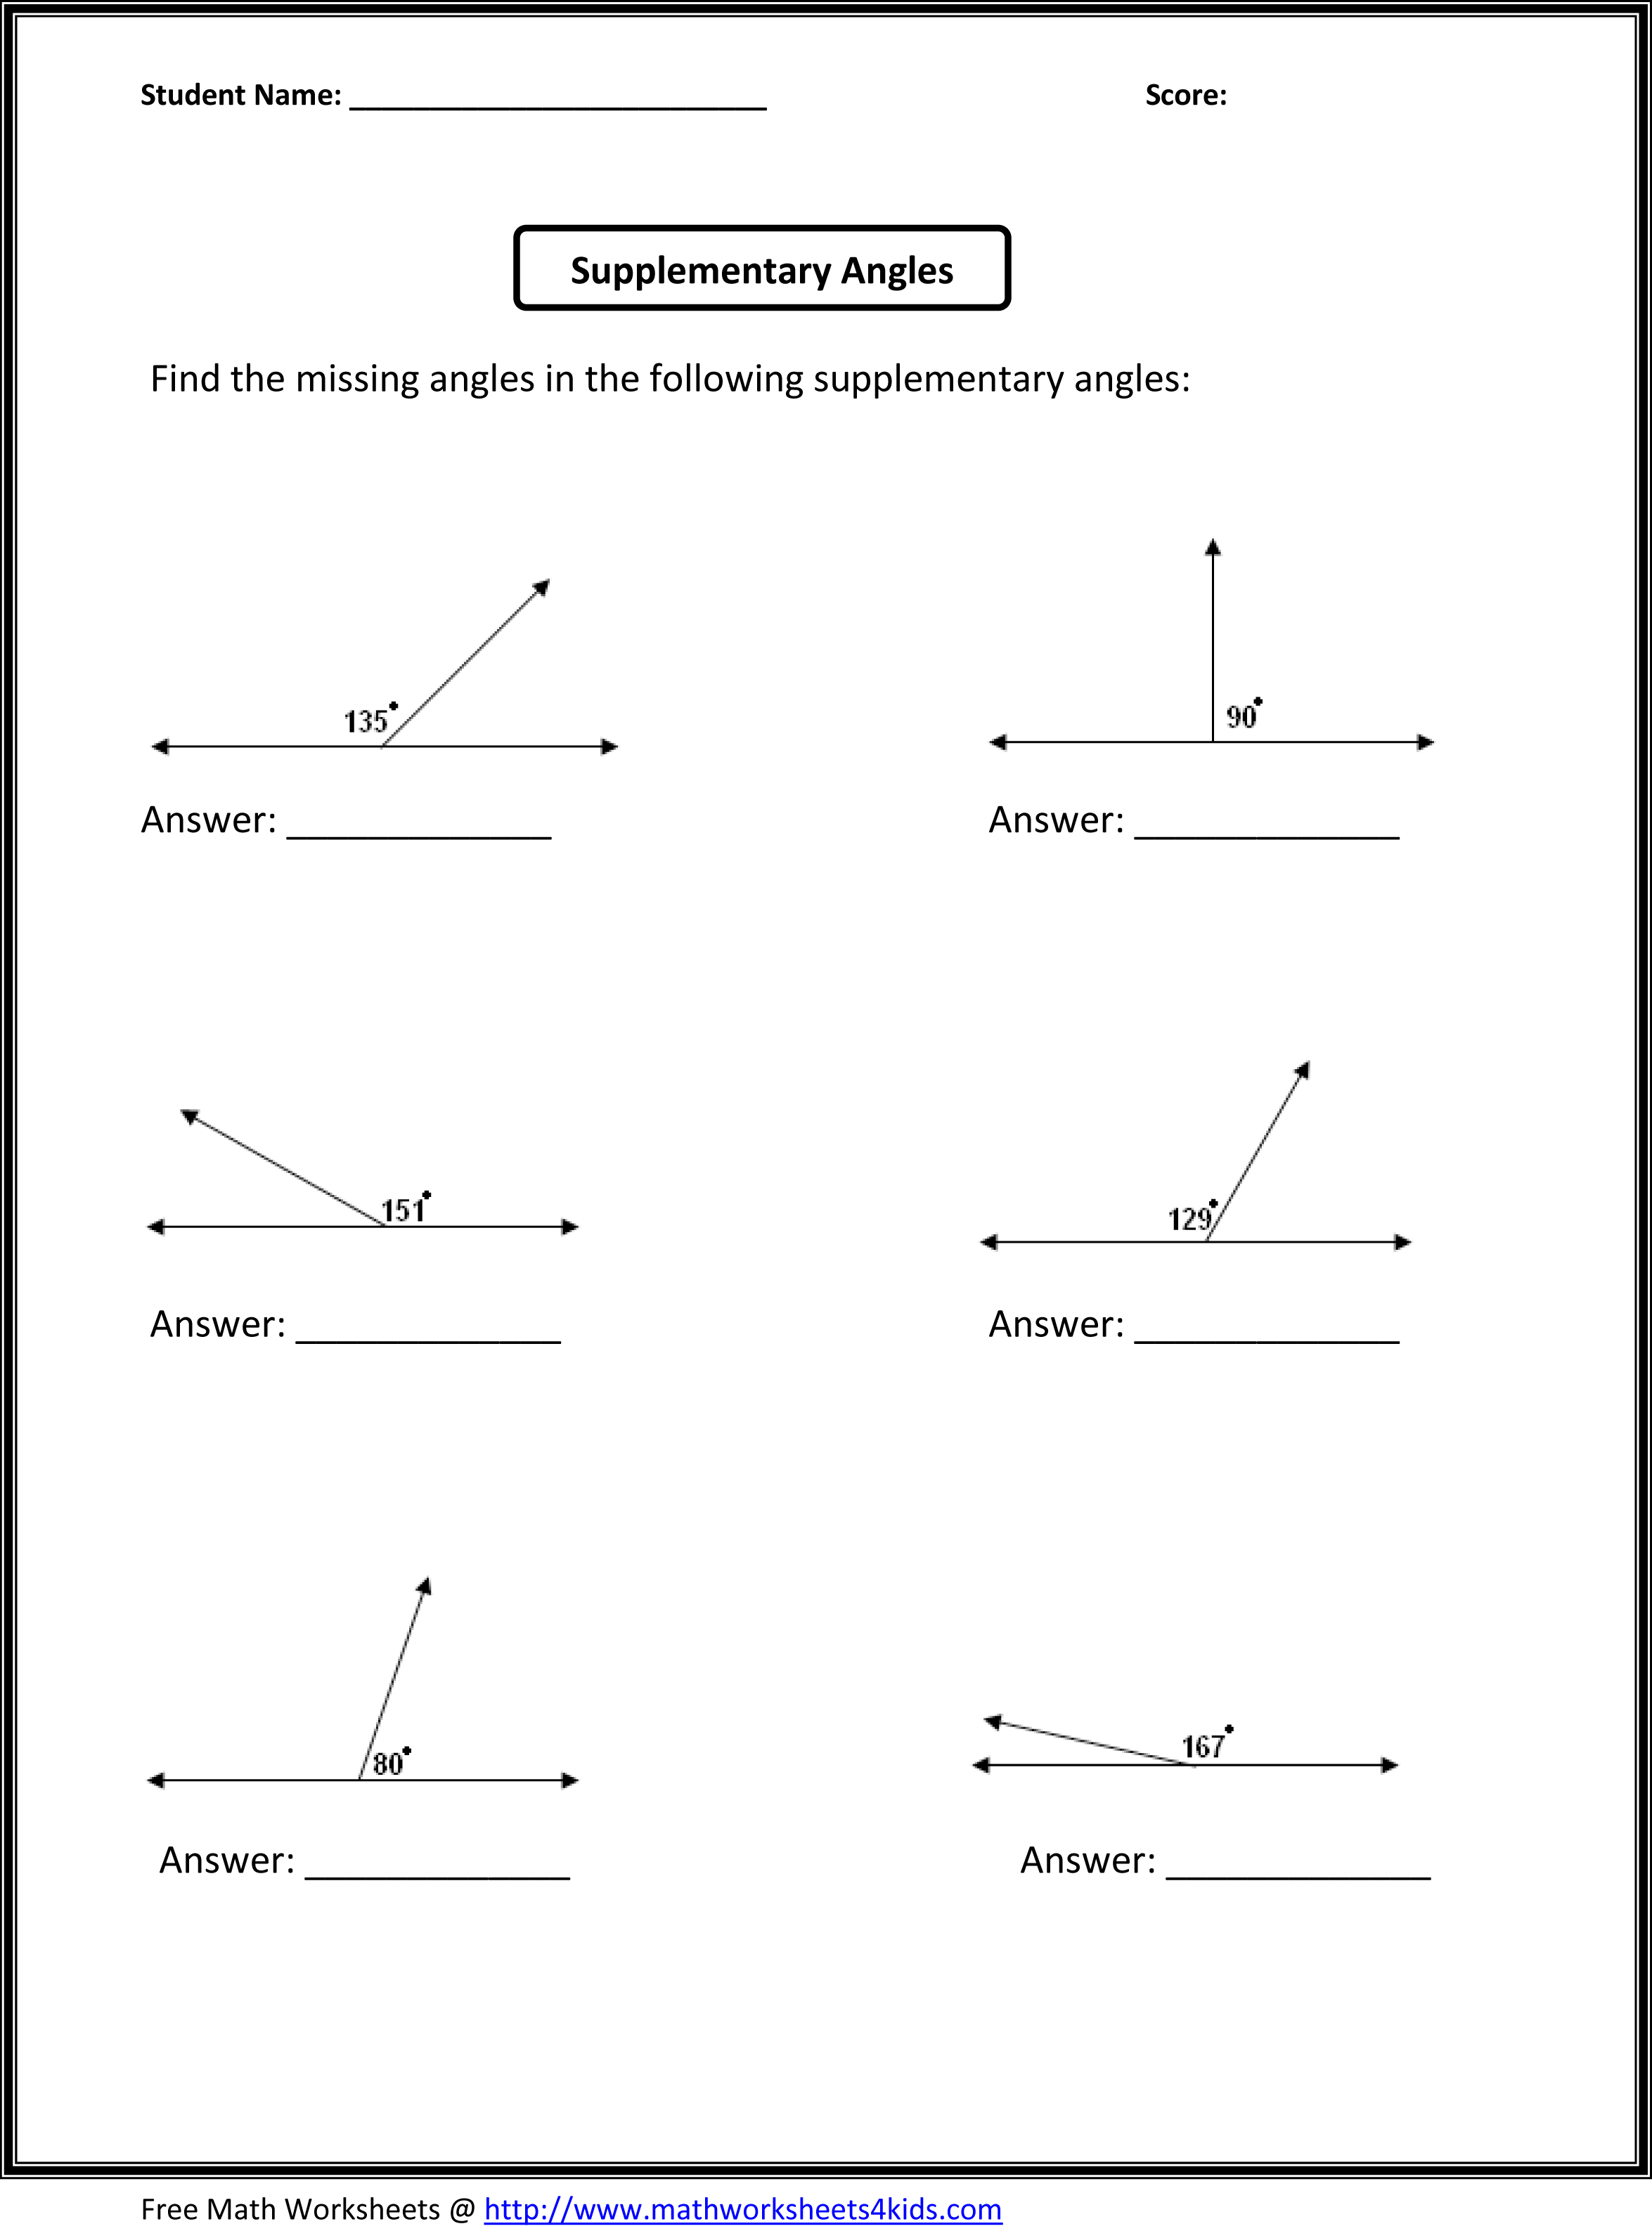 Printables 6th Grade Math Worksheets Online 6th grade math worksheets online christmas for value absolute based on basic math